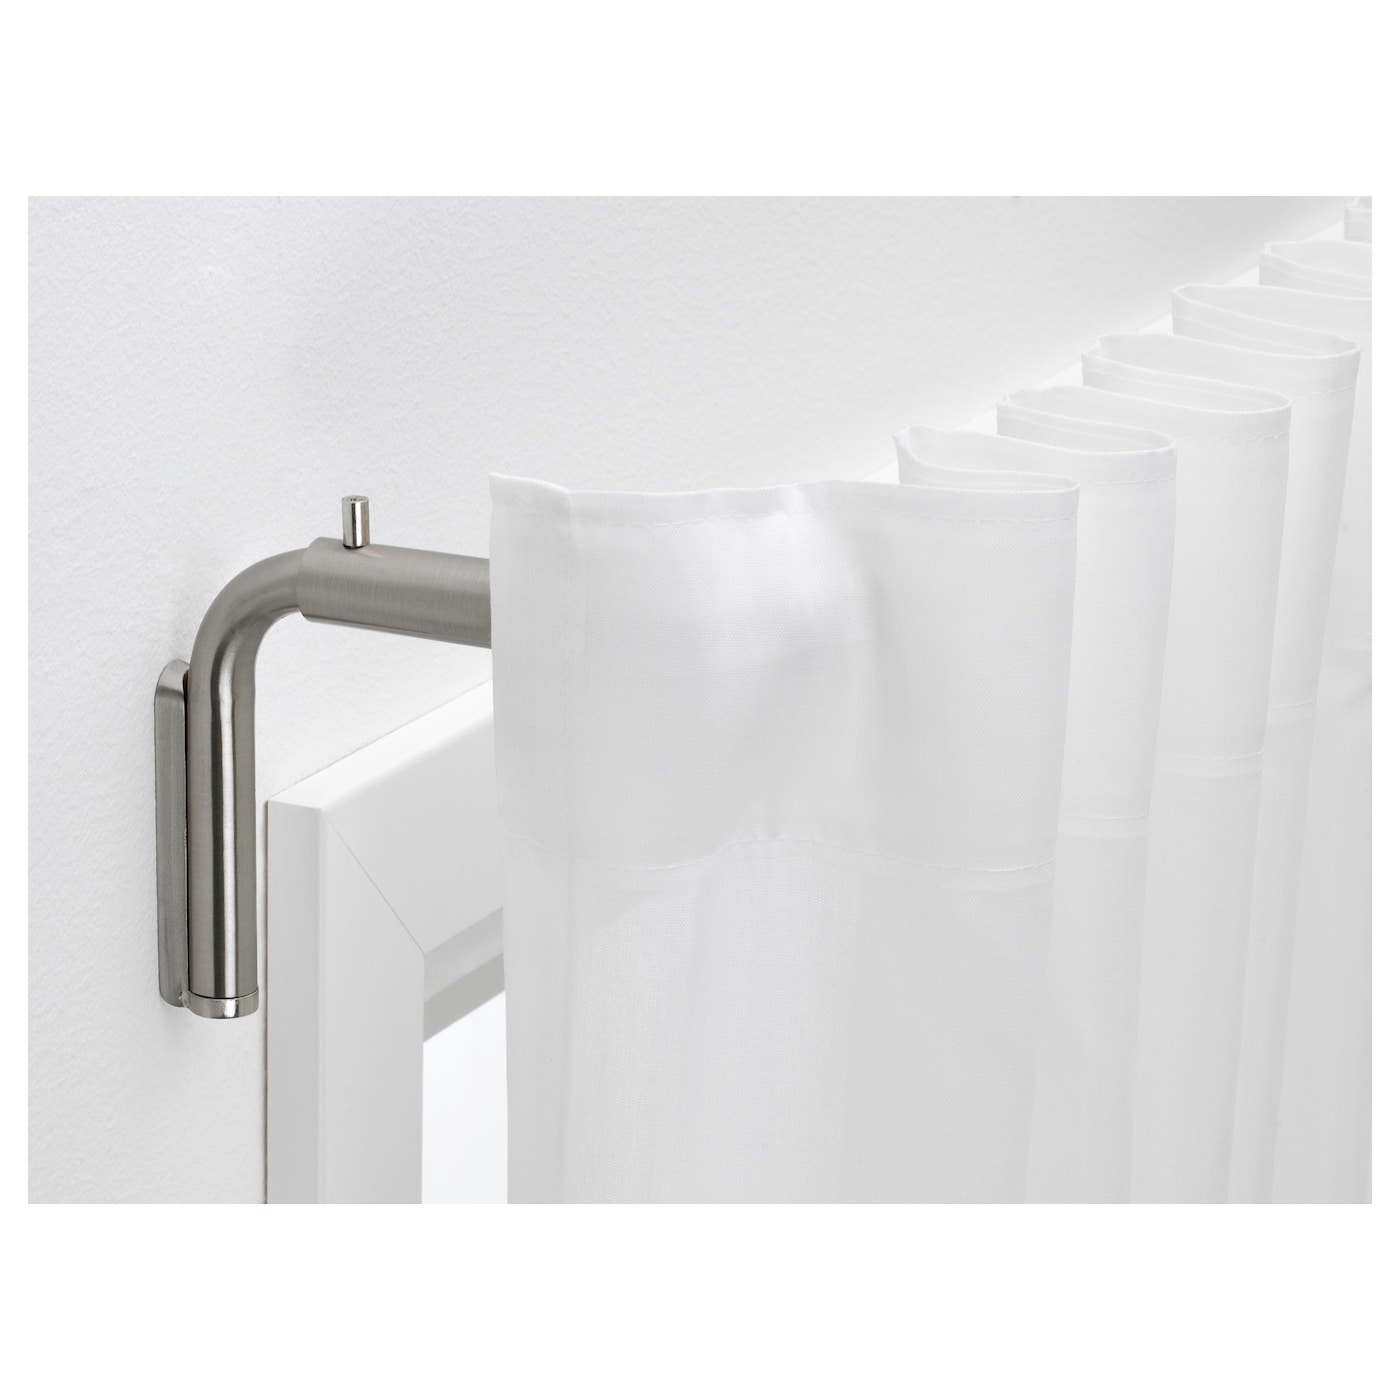 IKEA TIDPUNKT curtain rod set You can adjust the length of the curtain rods to fit your window.